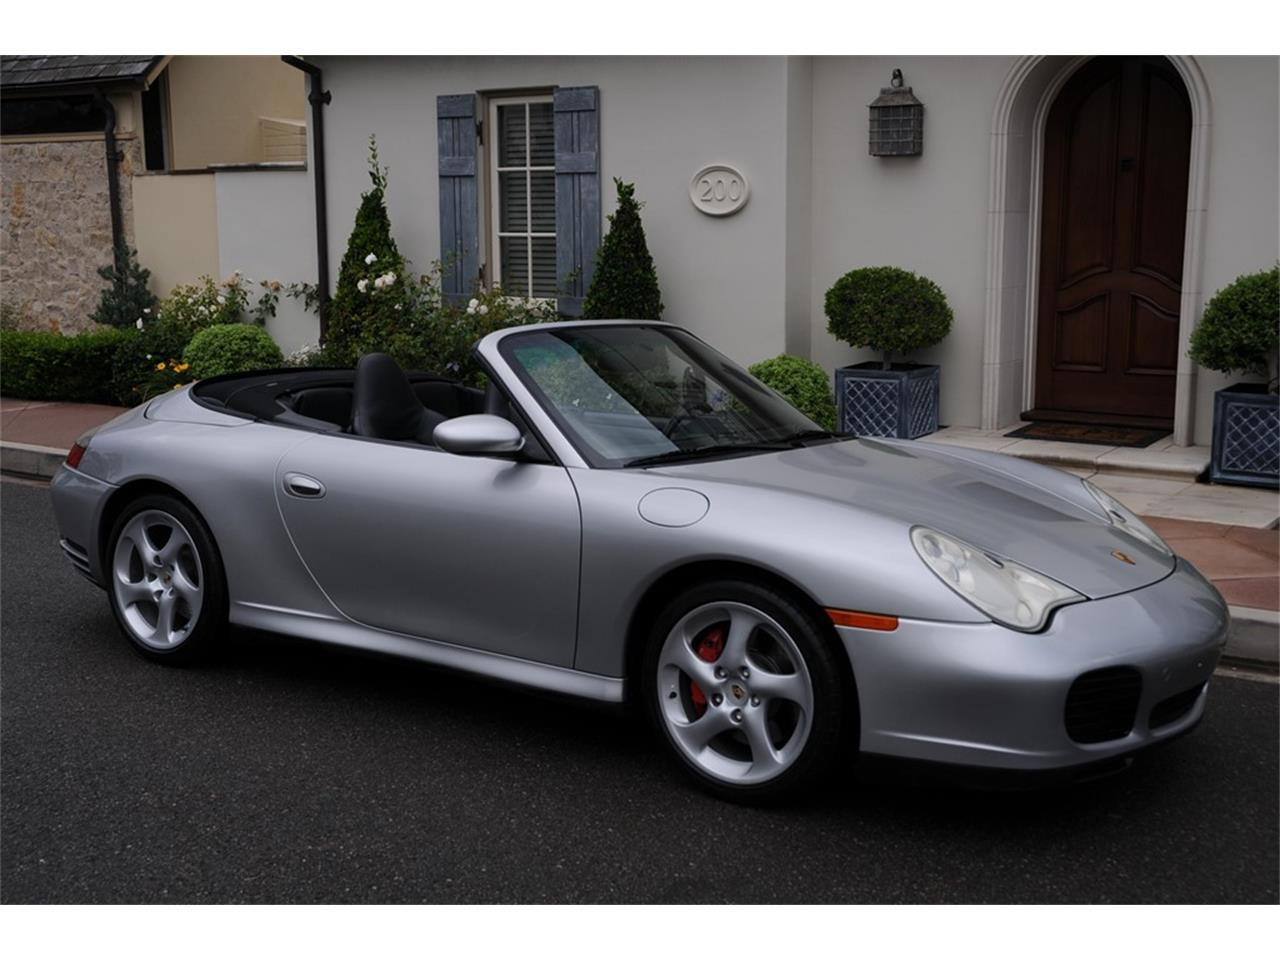 Large Picture of 2004 911 Carrera 4S Cabriolet located in California - $32,990.00 - QK9K